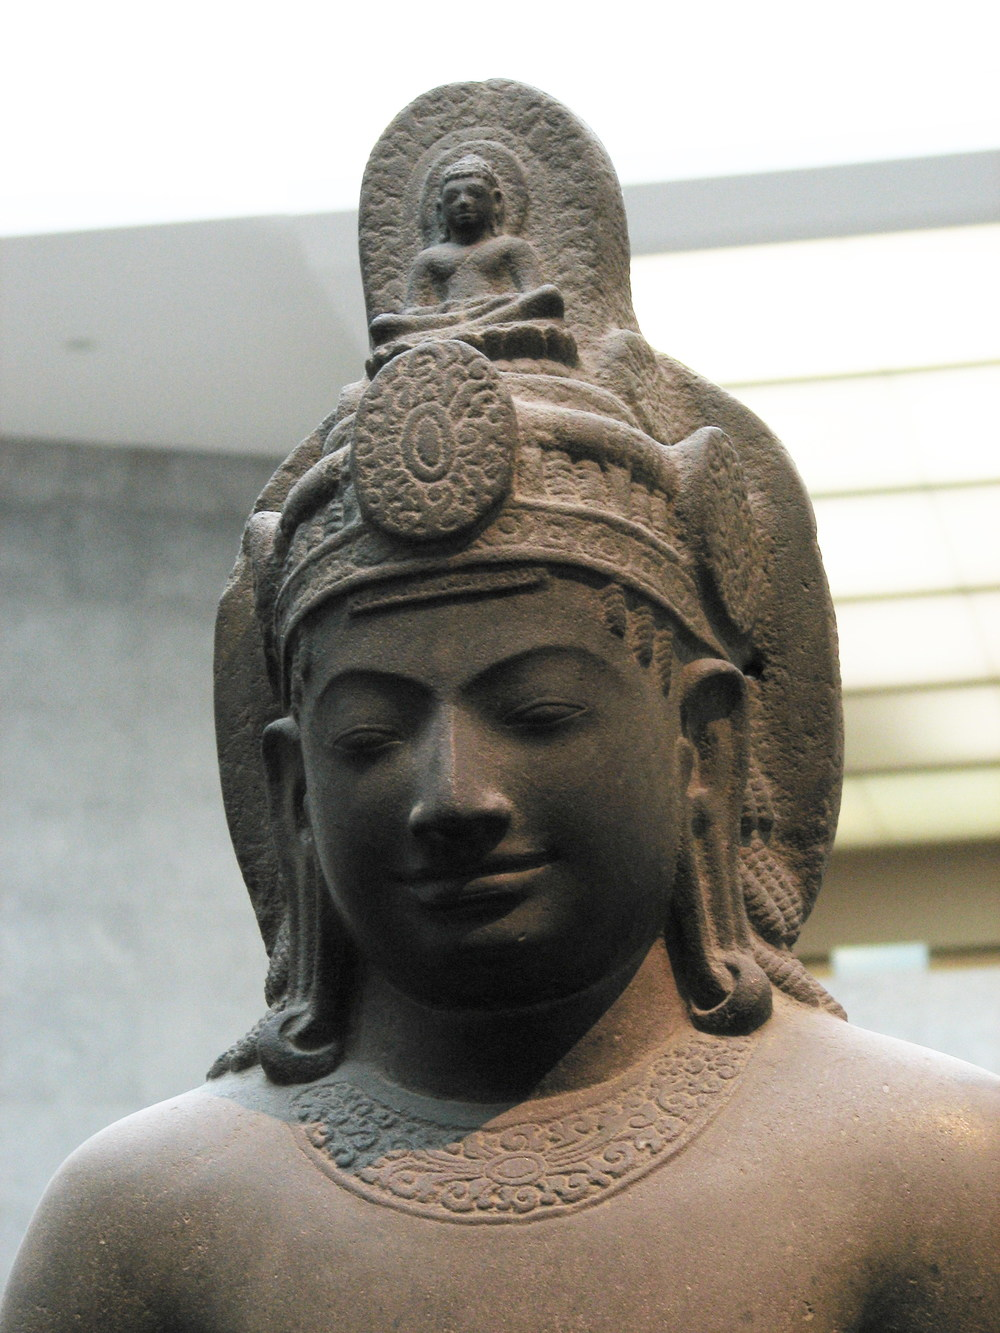 Cambodian statue of Avalokiteśvara Bodhisattva. Sandstone, 7th century CE. Many statues of this version of the Buddha feature the teacher seated on the crown.